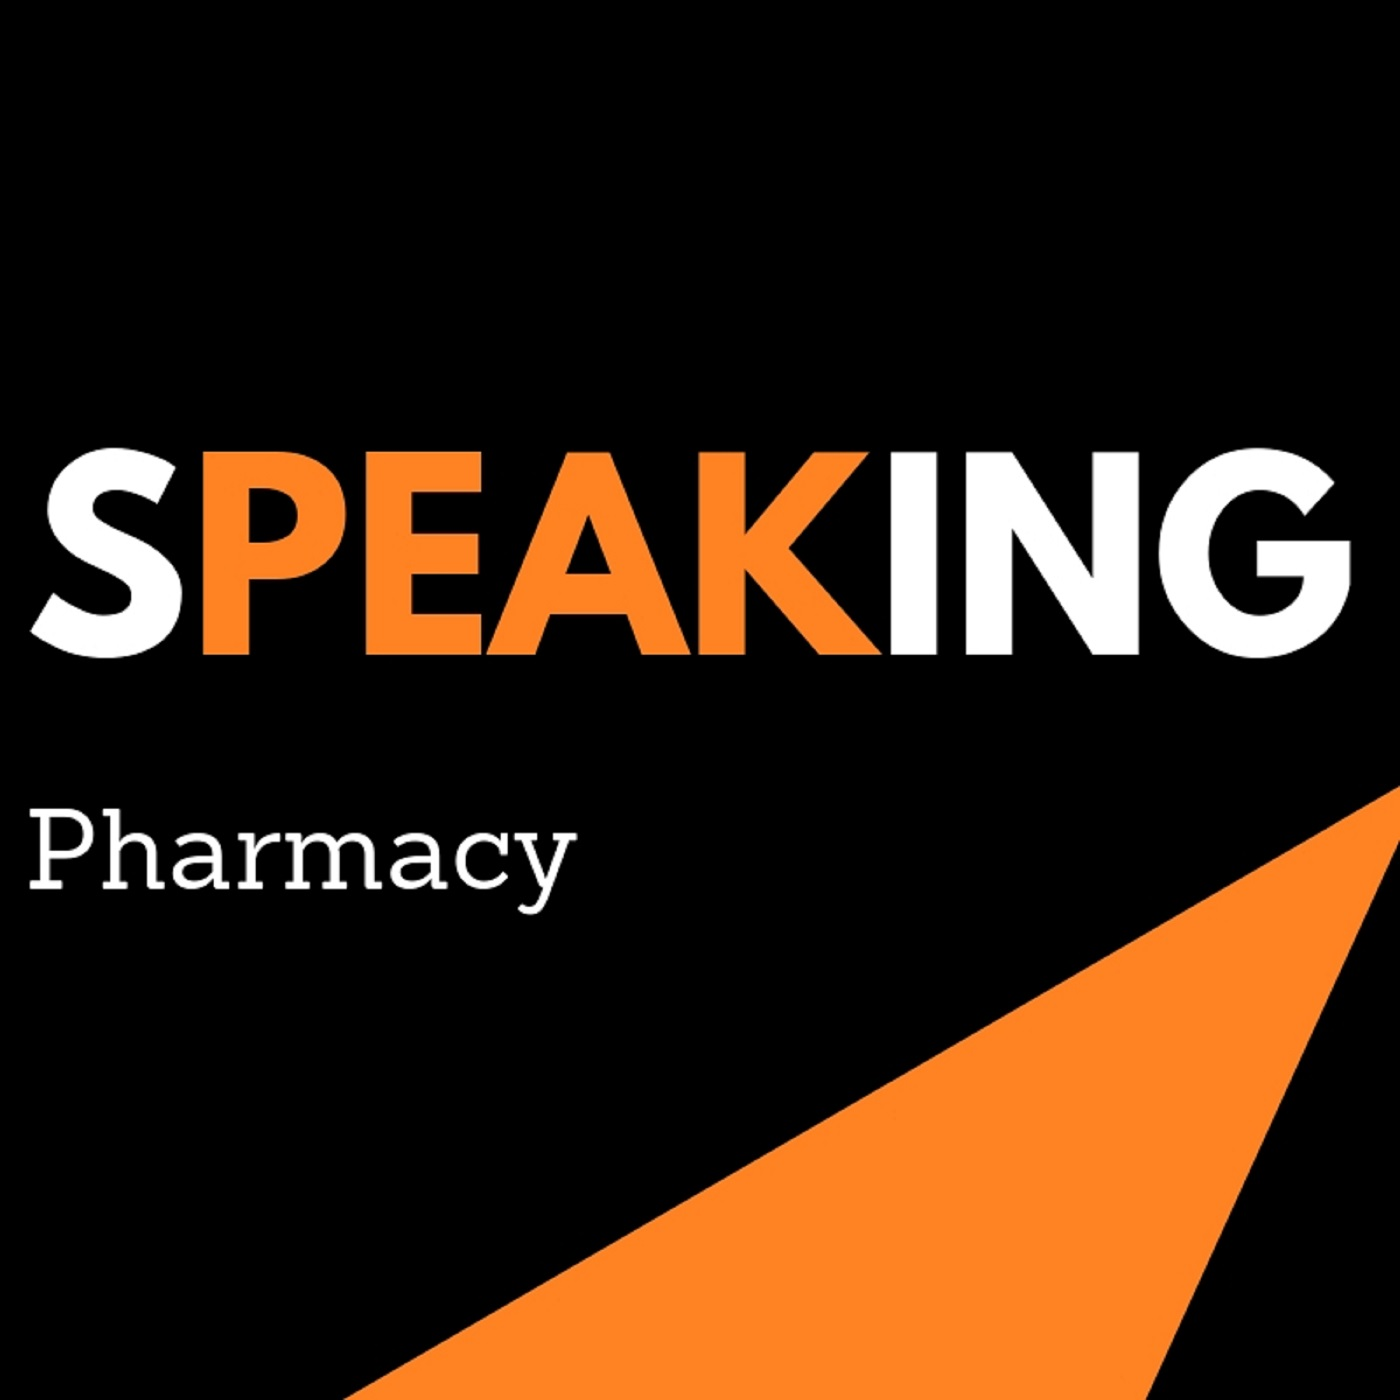 Speaking Pharmacy